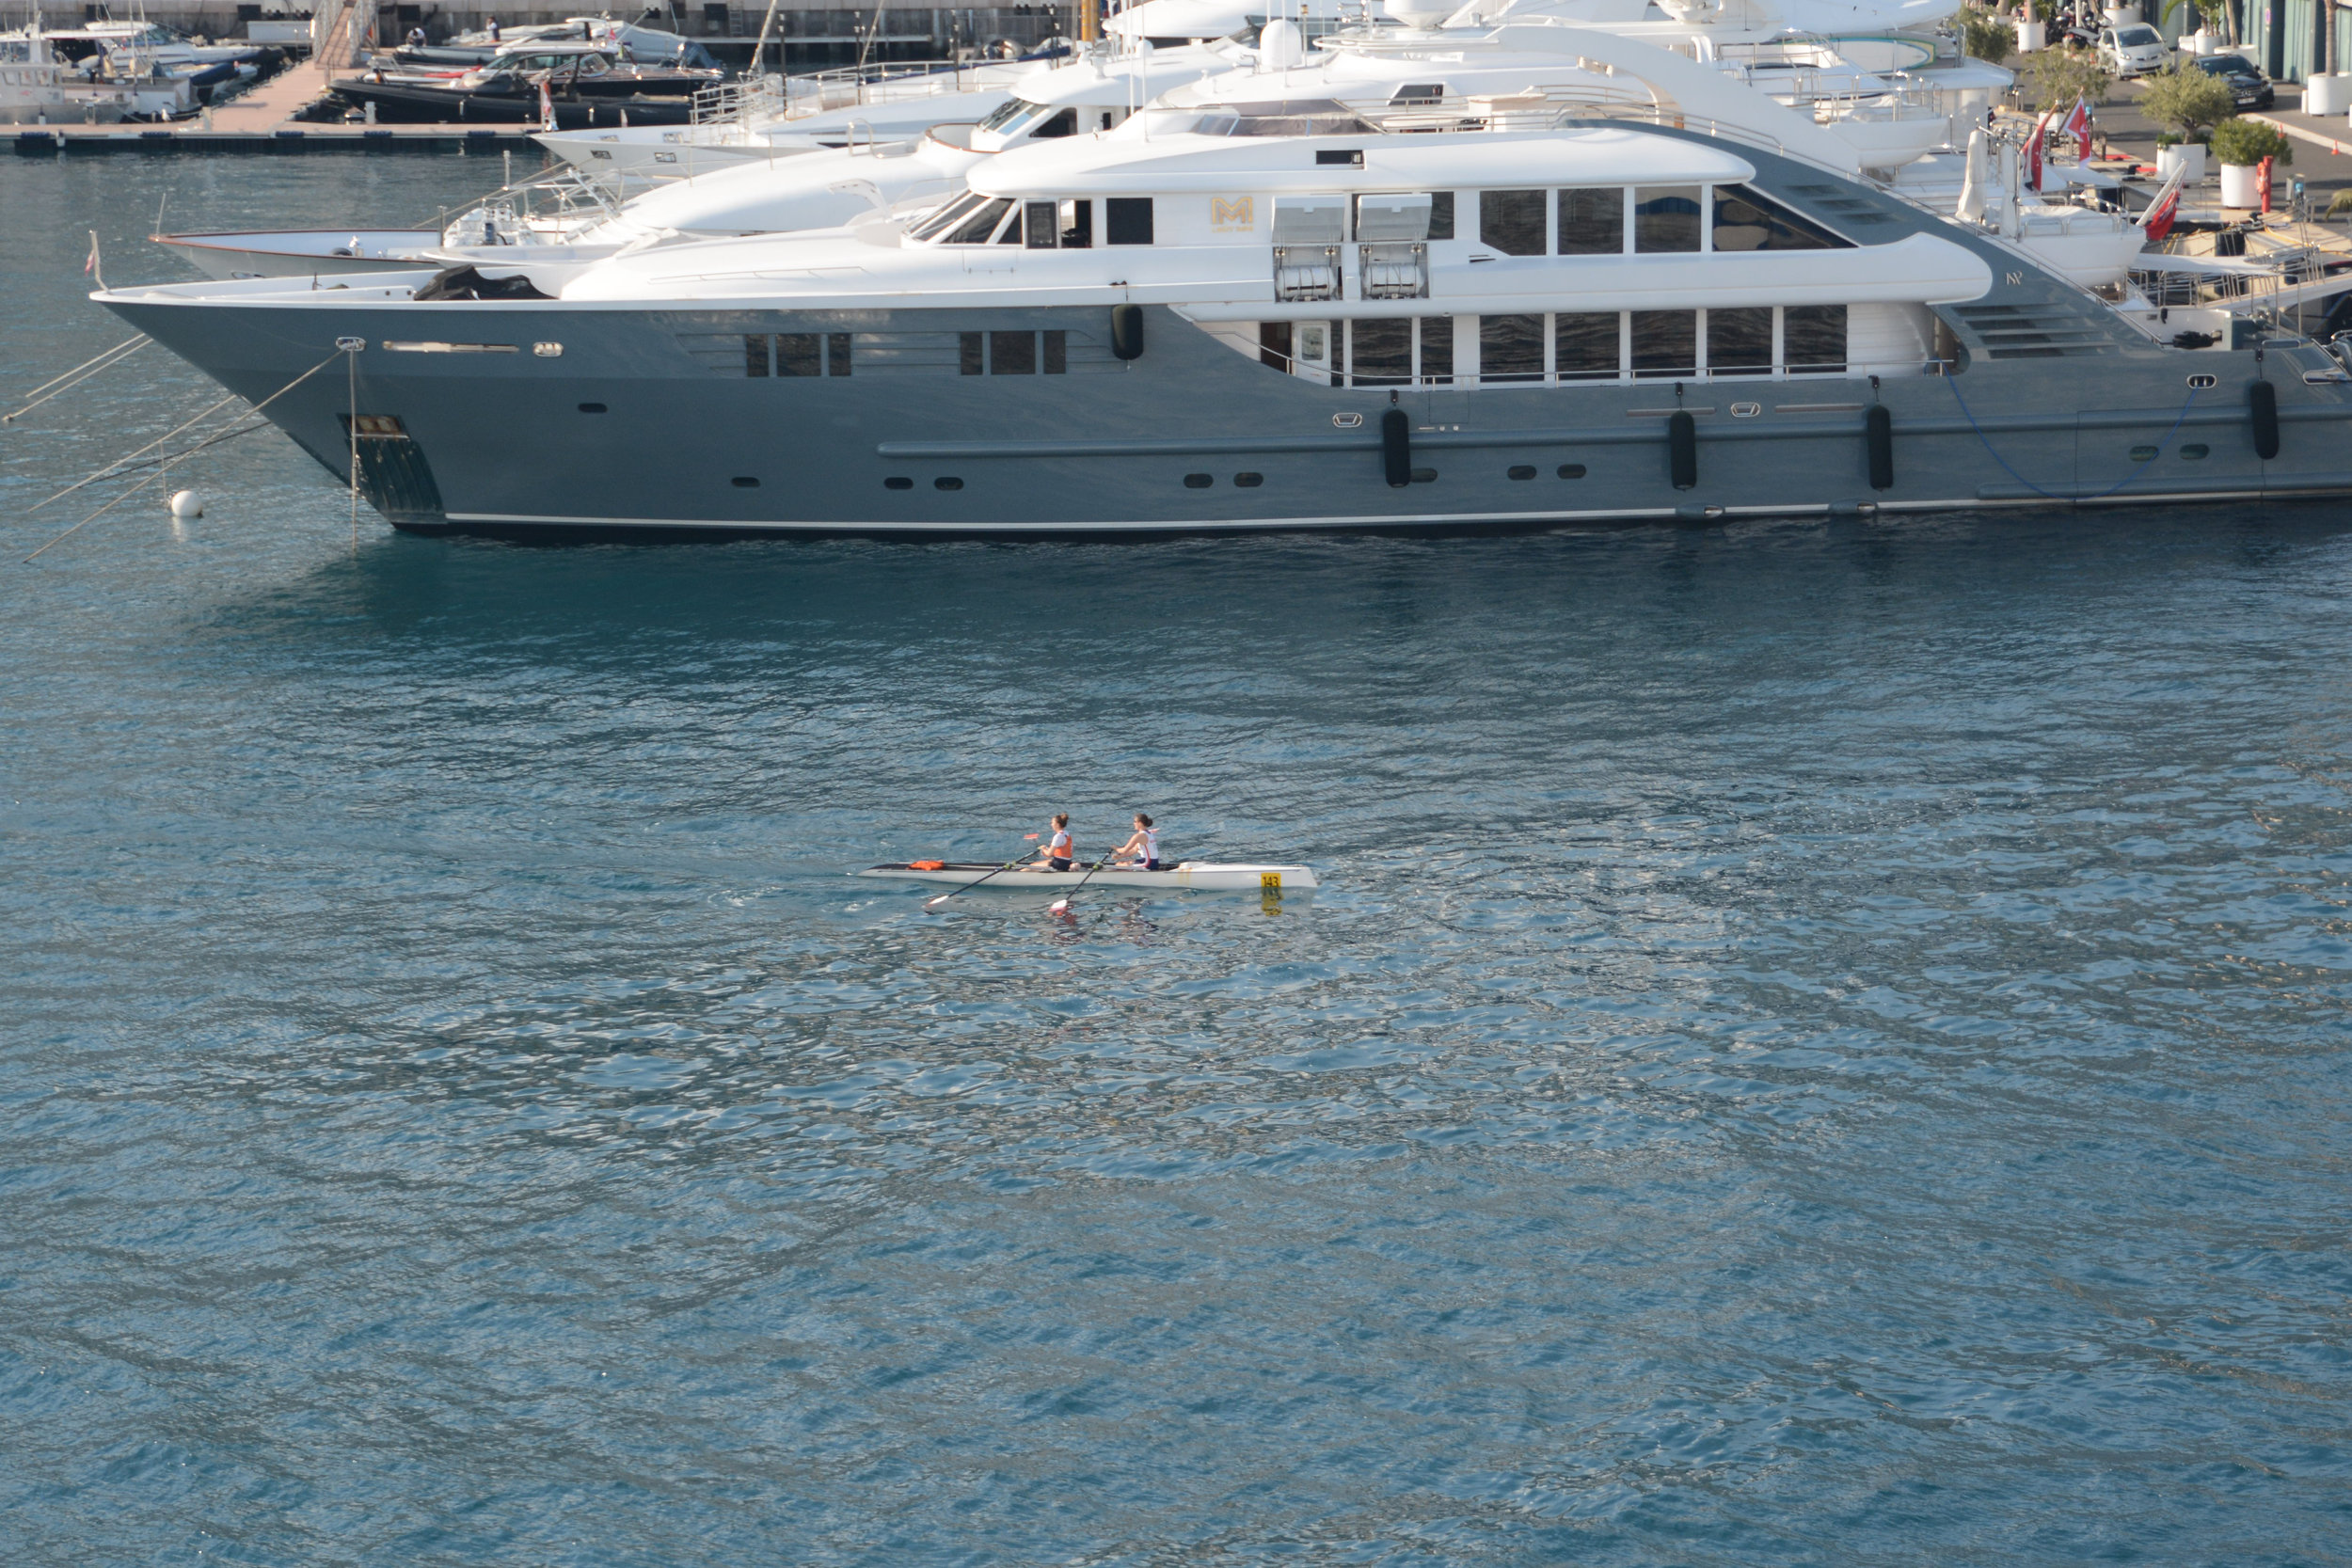 A two-woman shell in the harbor at Monte Carlo.  The ridiculous shift in scale and purpose caught my eye.